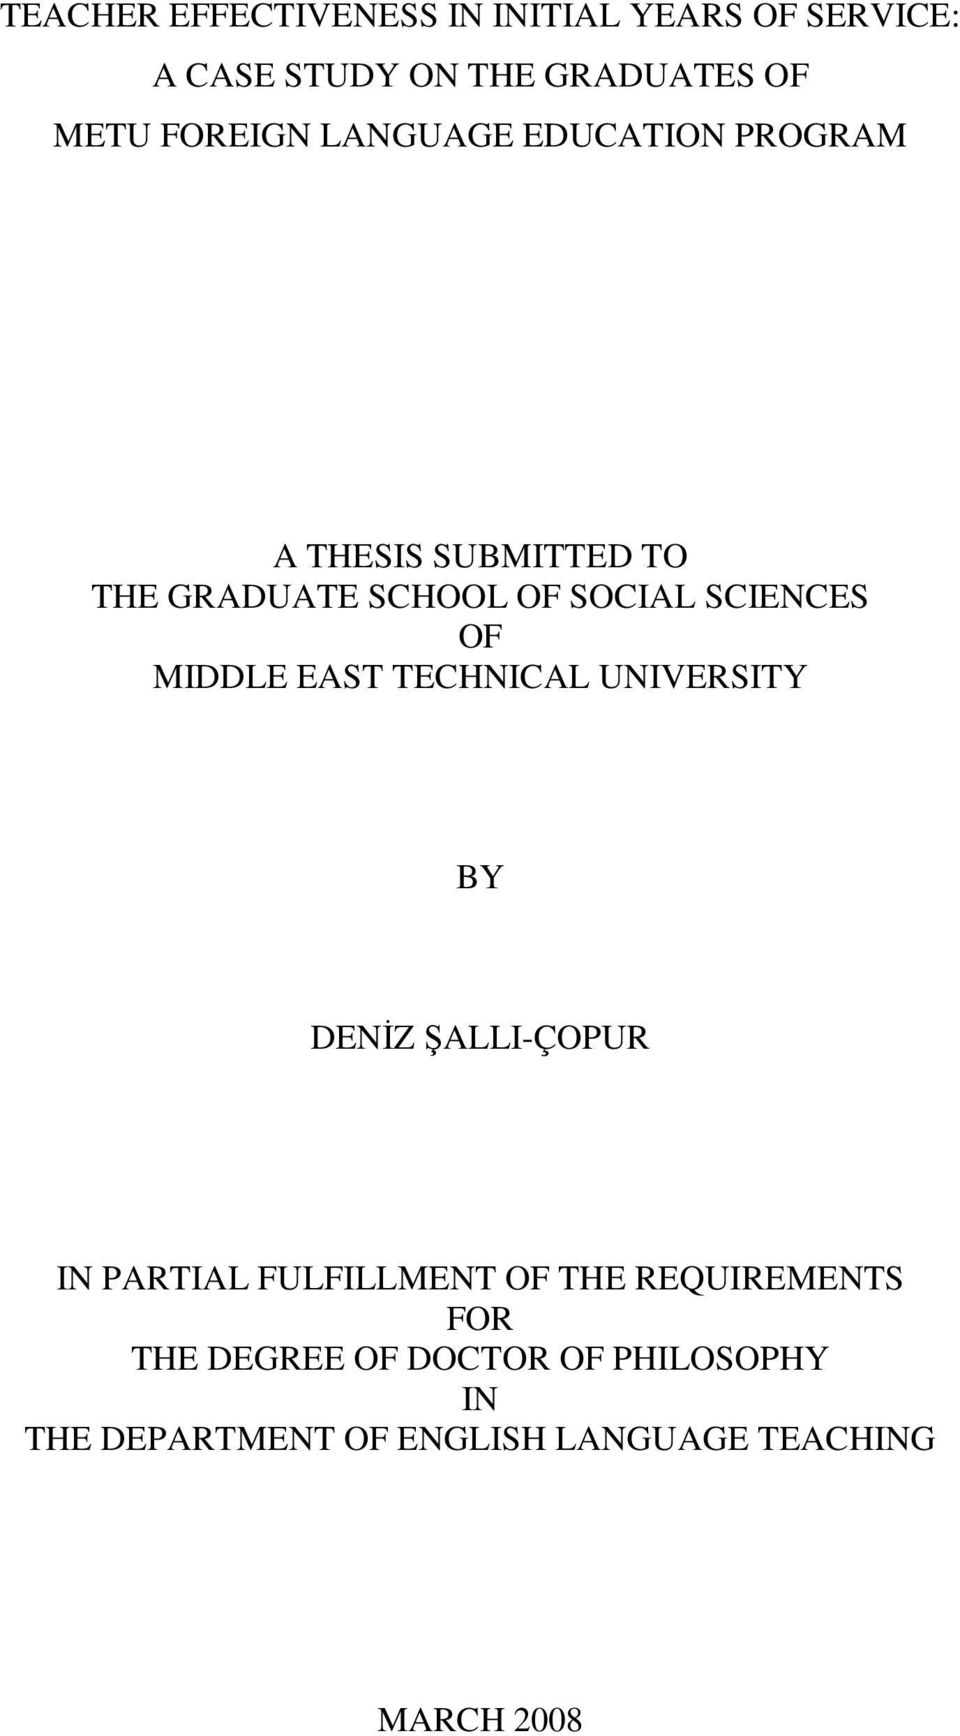 OF MIDDLE EAST TECHNICAL UNIVERSITY BY DENİZ ŞALLI-ÇOPUR IN PARTIAL FULFILLMENT OF THE